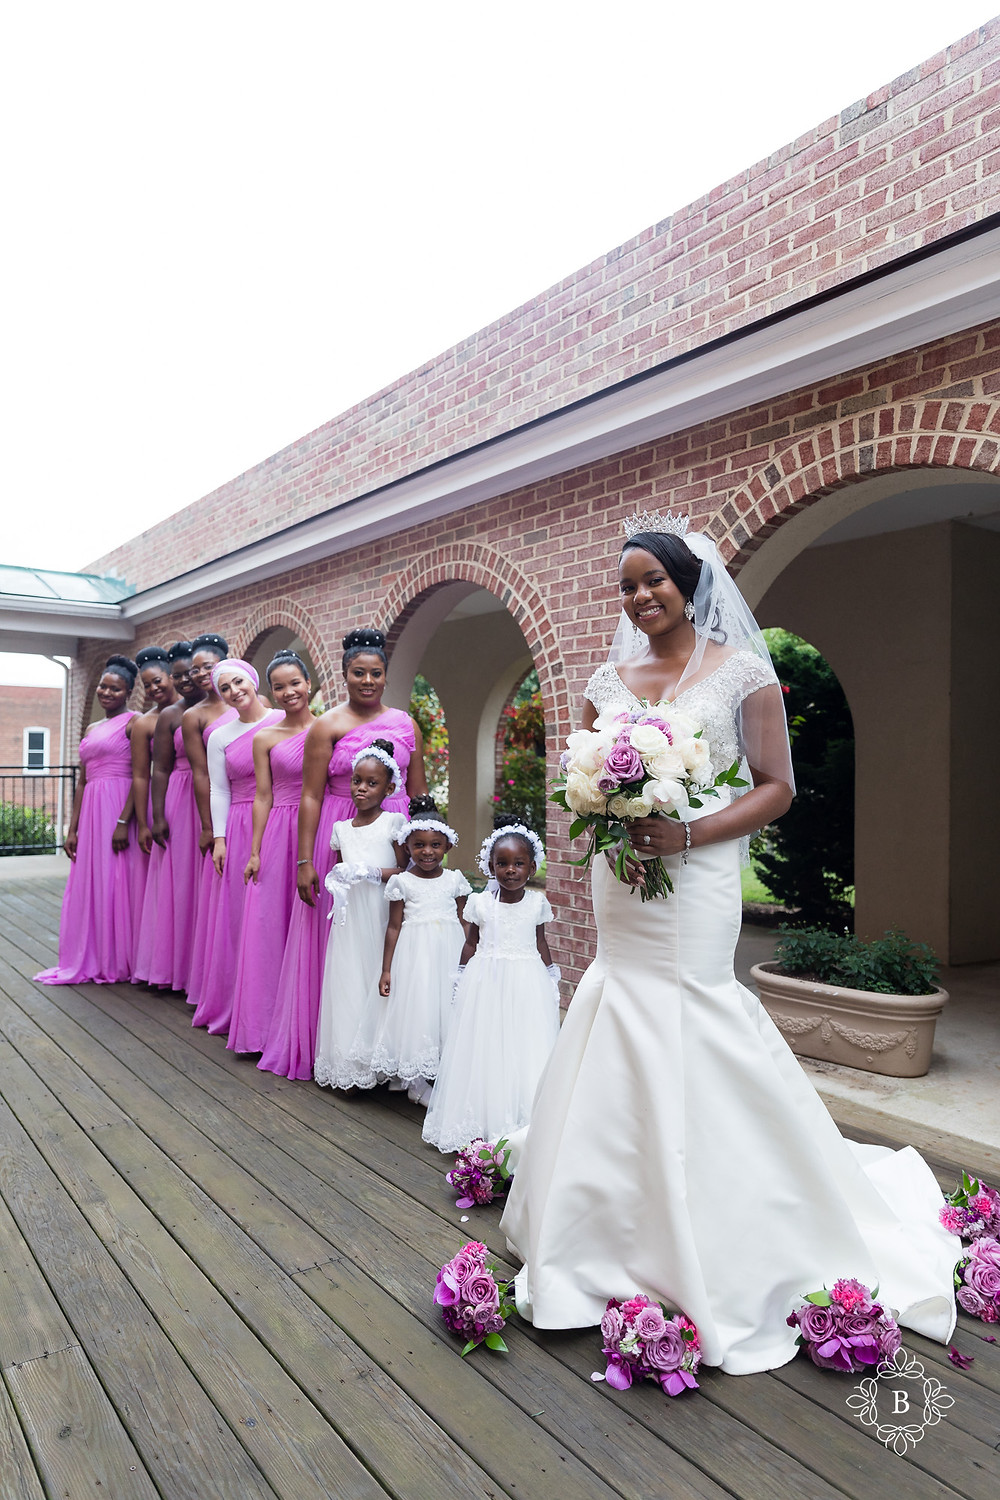 Northern Virginia Culpeper Center and Suites wedding party portraits bridal party portrait church arches